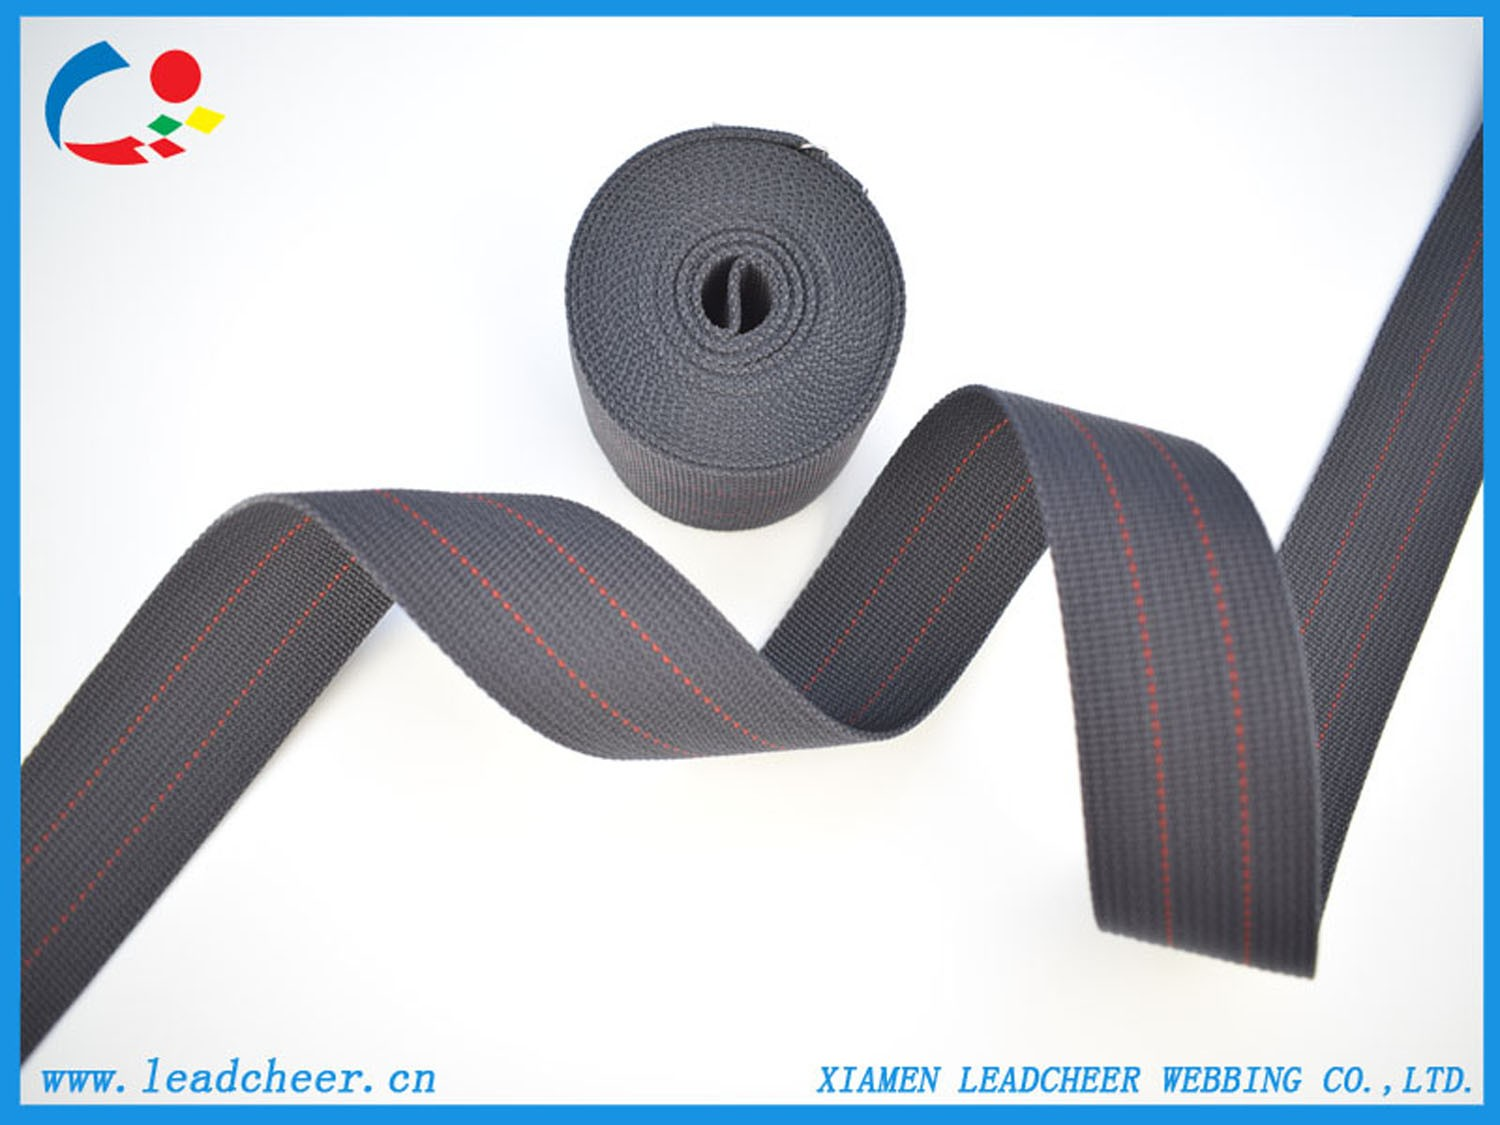 High quality Luggage Tape PP Webbing Quotes,China Luggage Tape PP Webbing Factory,Luggage Tape PP Webbing Purchasing